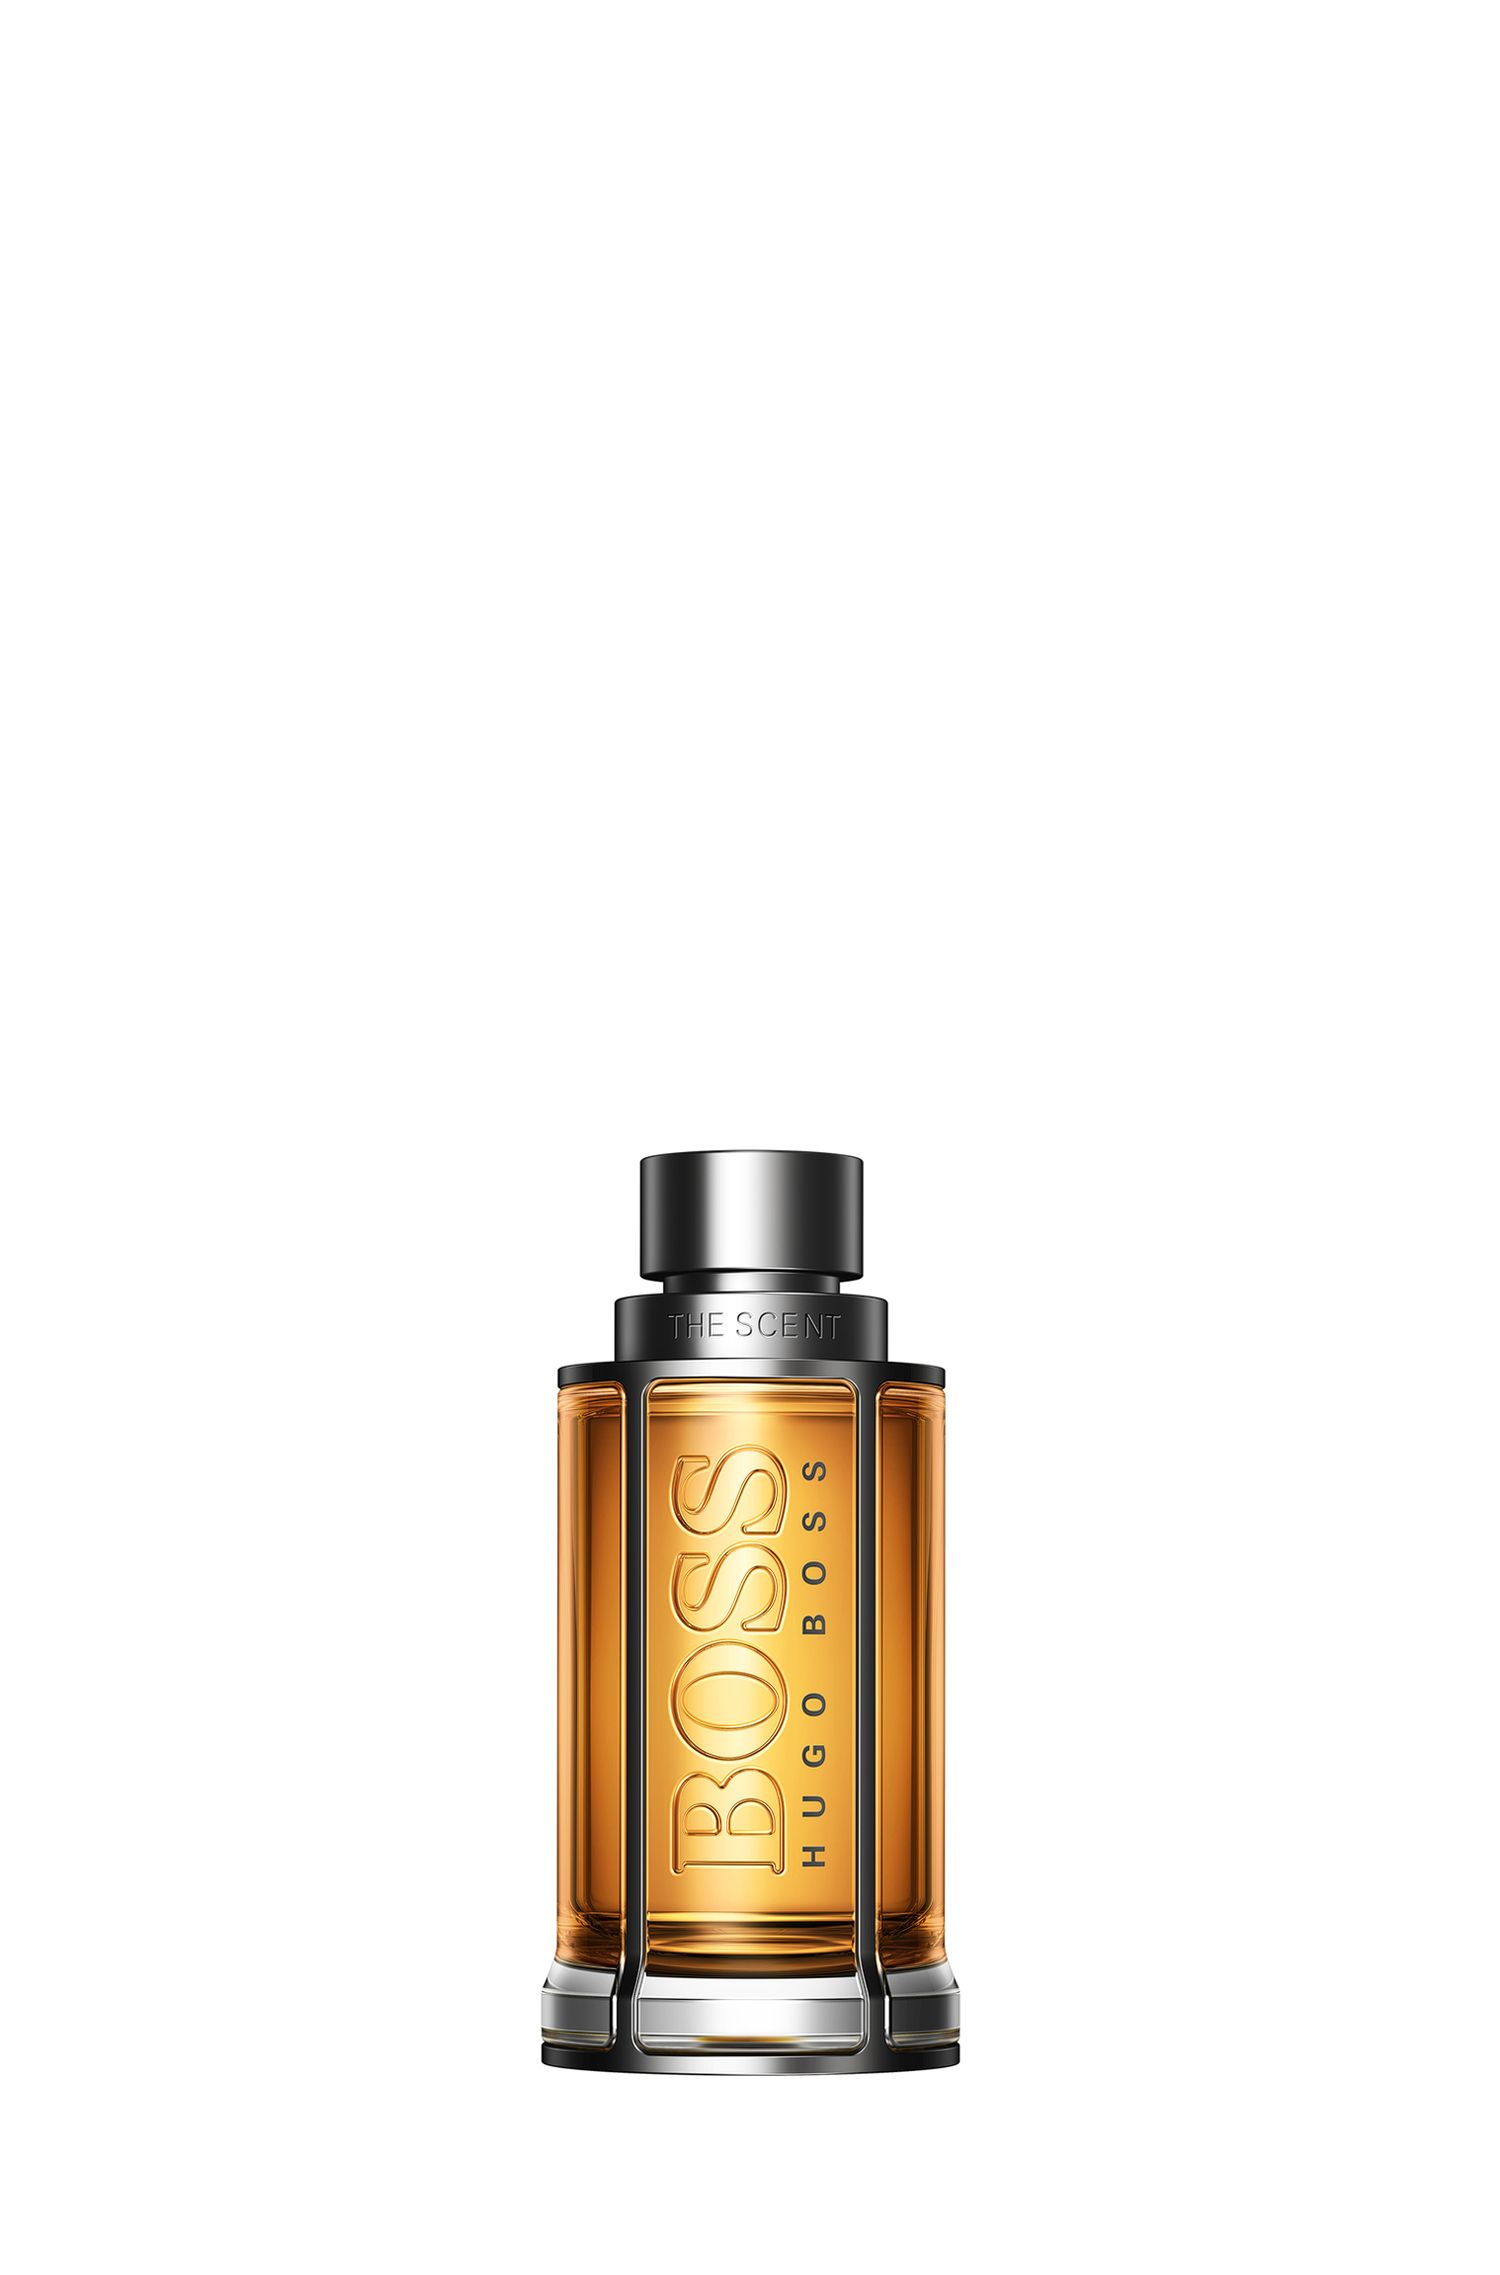 BOSS The Scent eau de toilette 50 ml